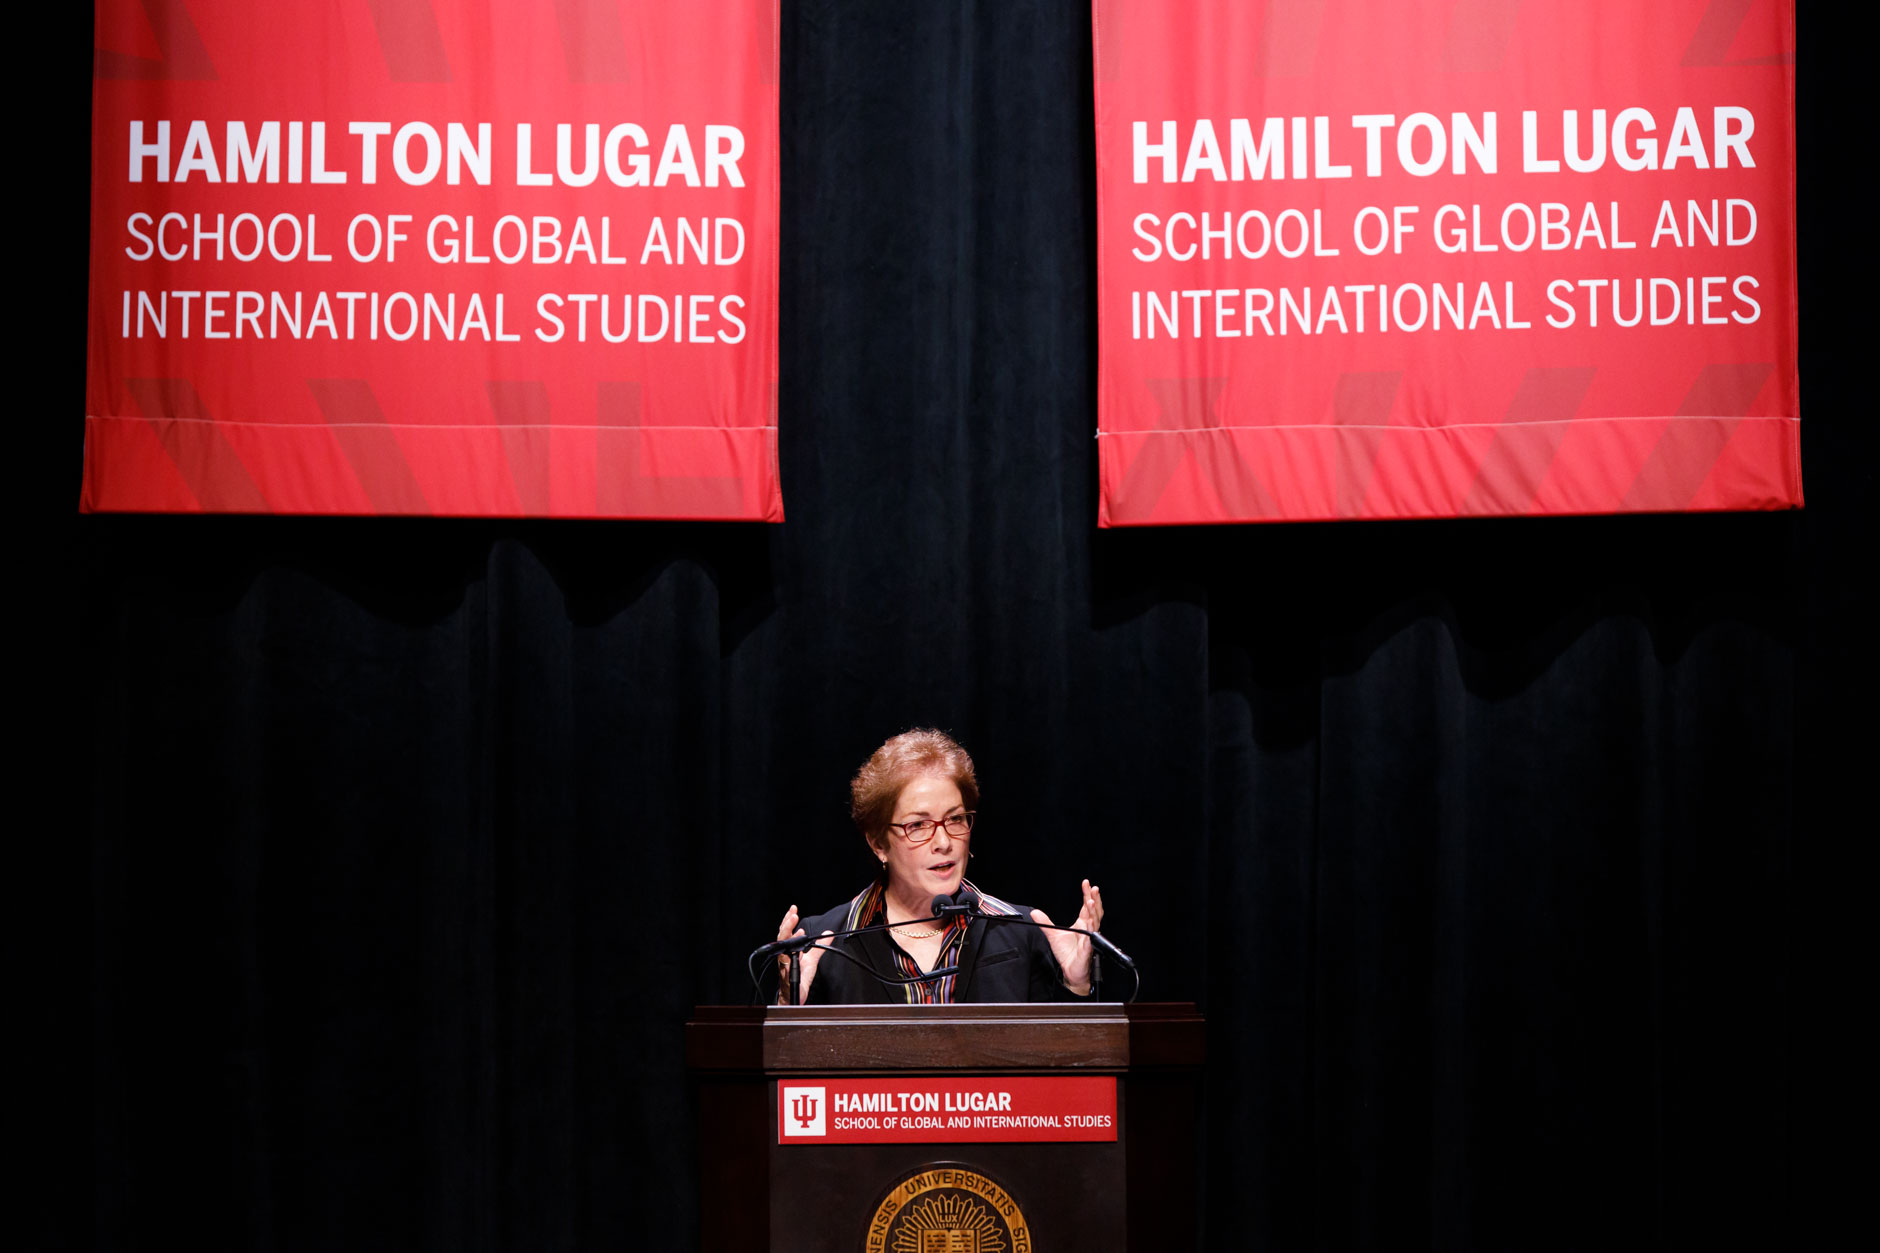 Former U.S. Ambassador to Ukraine Marie Yovanovitch speaks during the America's Role in the World Conference at IU Bloomington on Friday, March 6, 2020. (James Brosher/Indiana University)